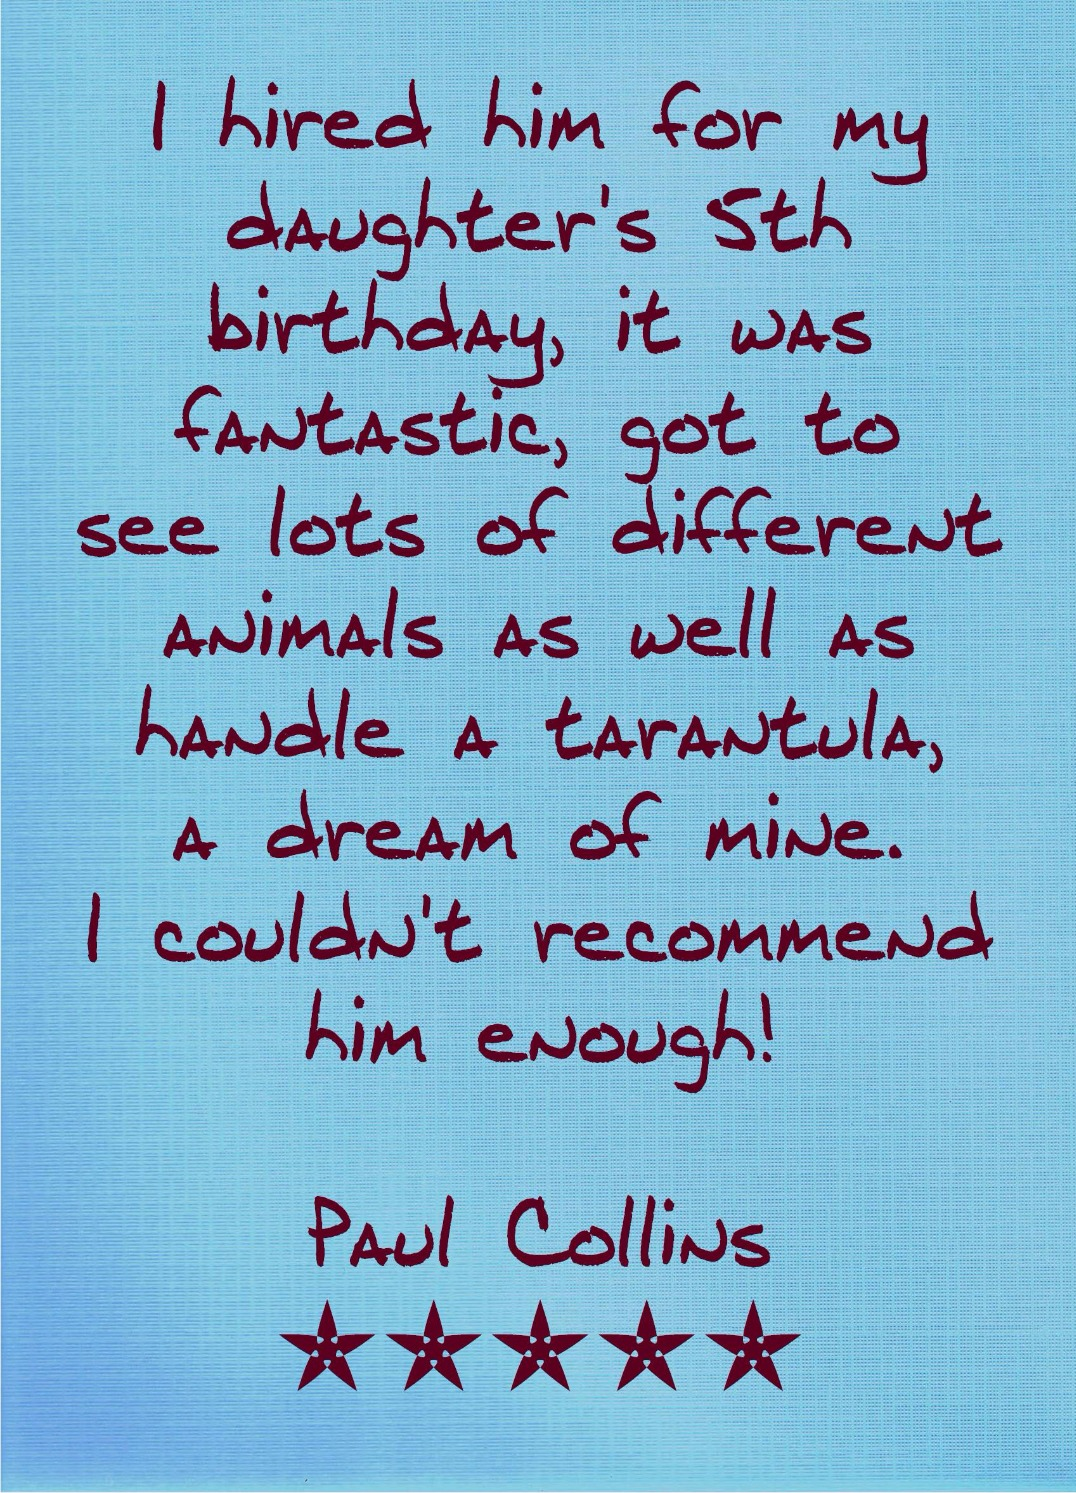 N-paul collins - fb_edited